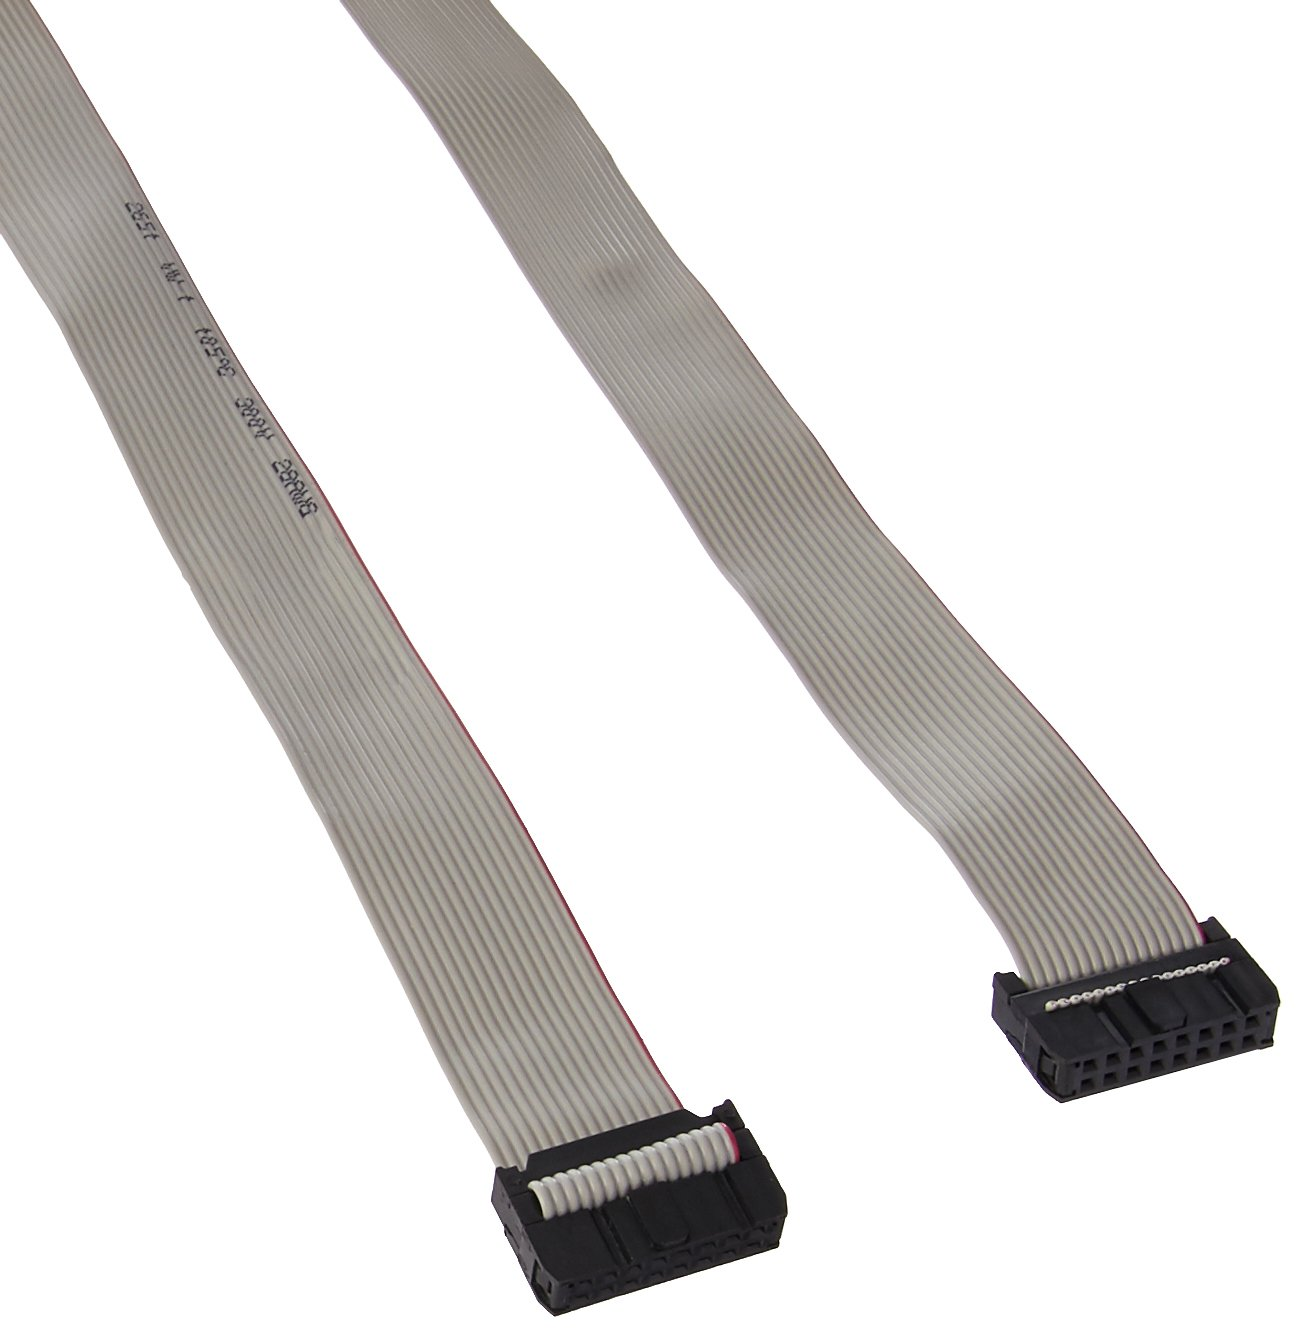 Uxcell IDC Flat Ribbon Cable, 2.54 mm Pitch, 16 Pin, 100 cm Length, 3 Pieces